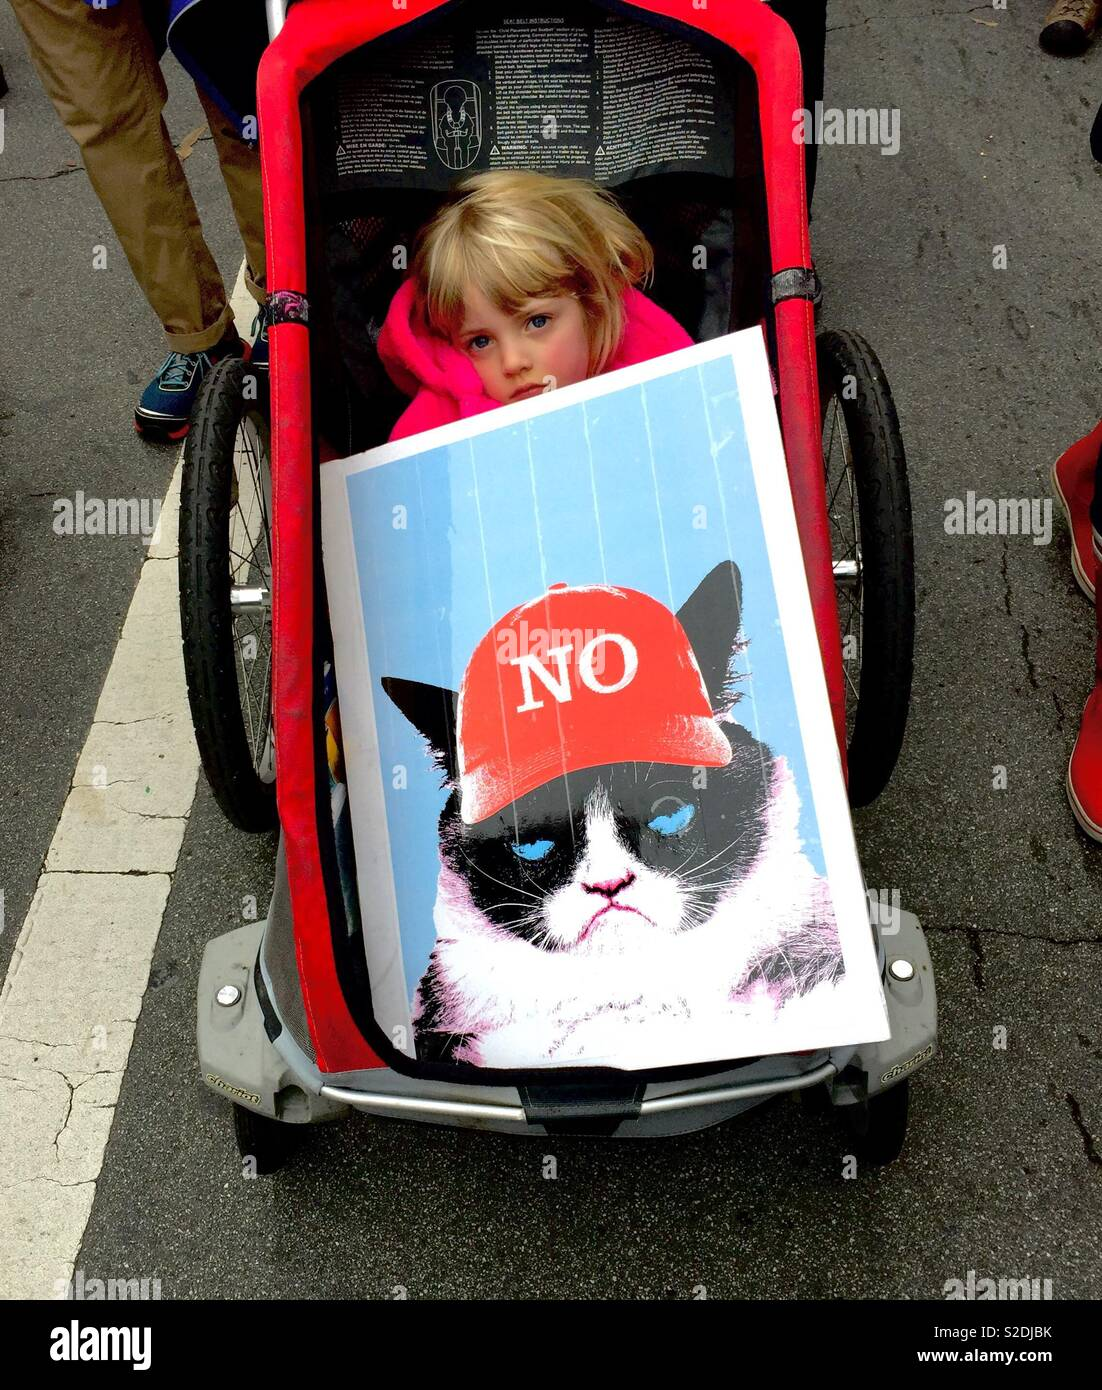 Tired blonde child in stroller behind a protest sign of Grumpy Cat wearing a red baseball cap that says NO, instead of a MAGA hat. Women's March 2017. Oakland, California, USA Stock Photo